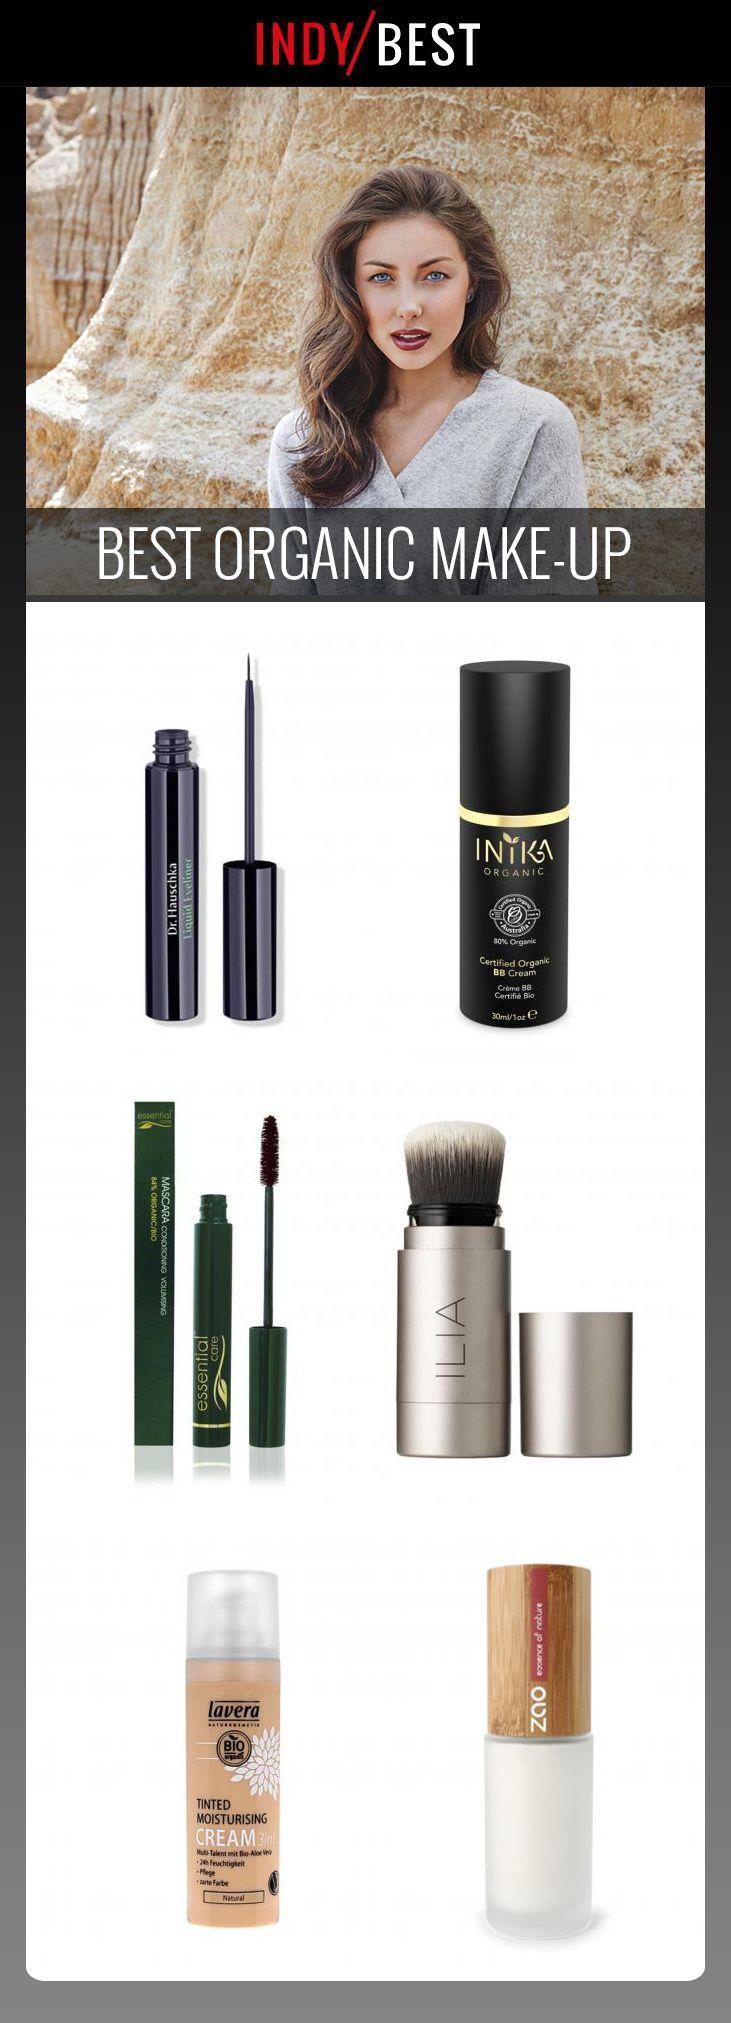 10 best organic makeup products that your face will thank